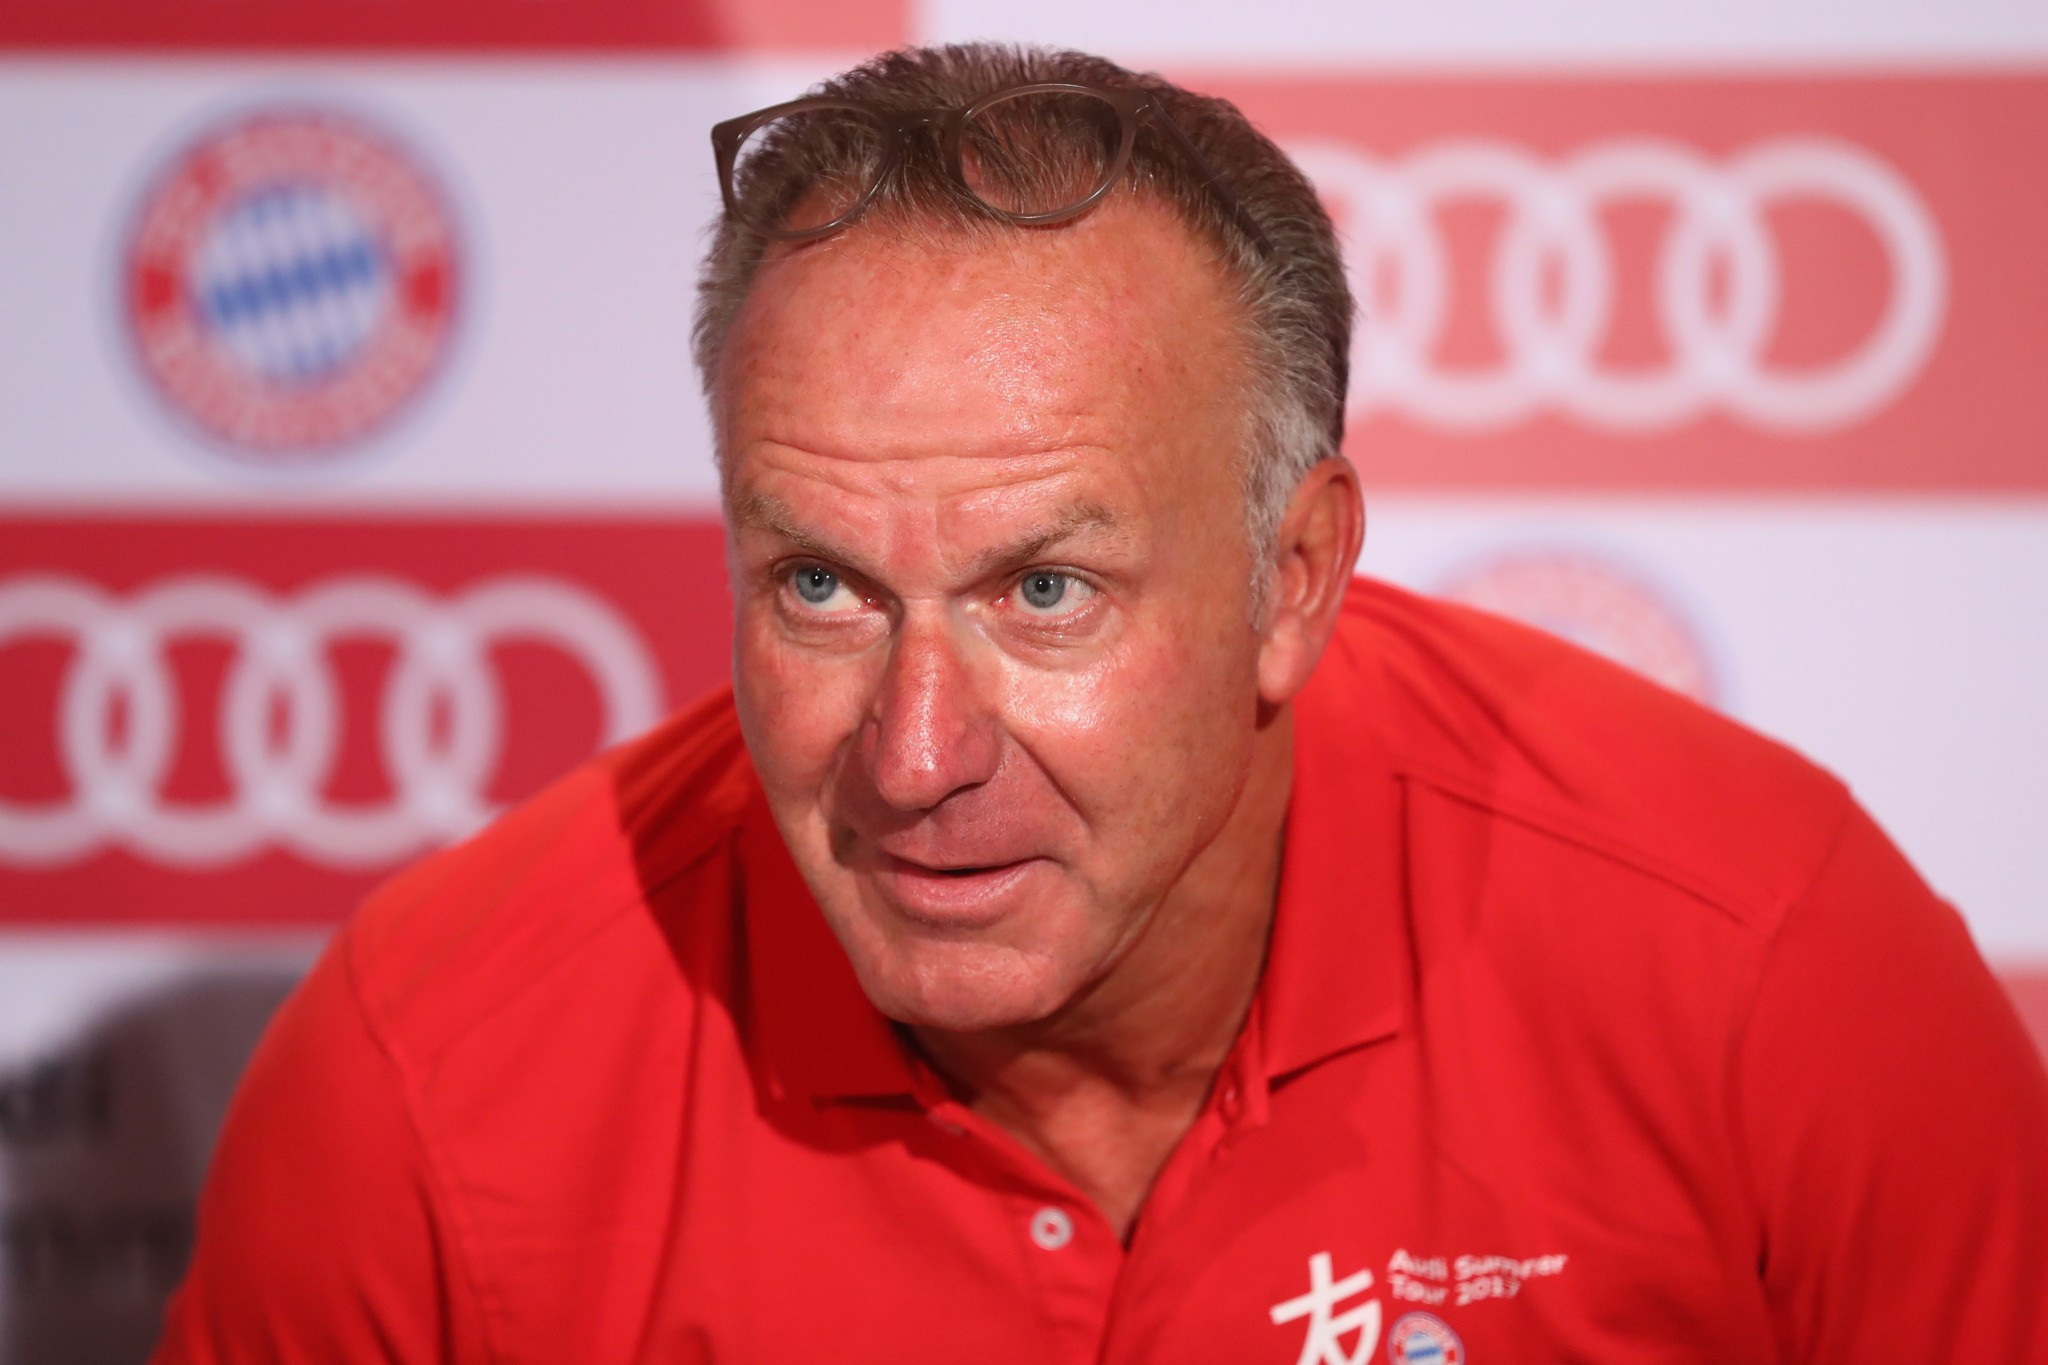 Rummenigge to stand down as chairman of European Club Association